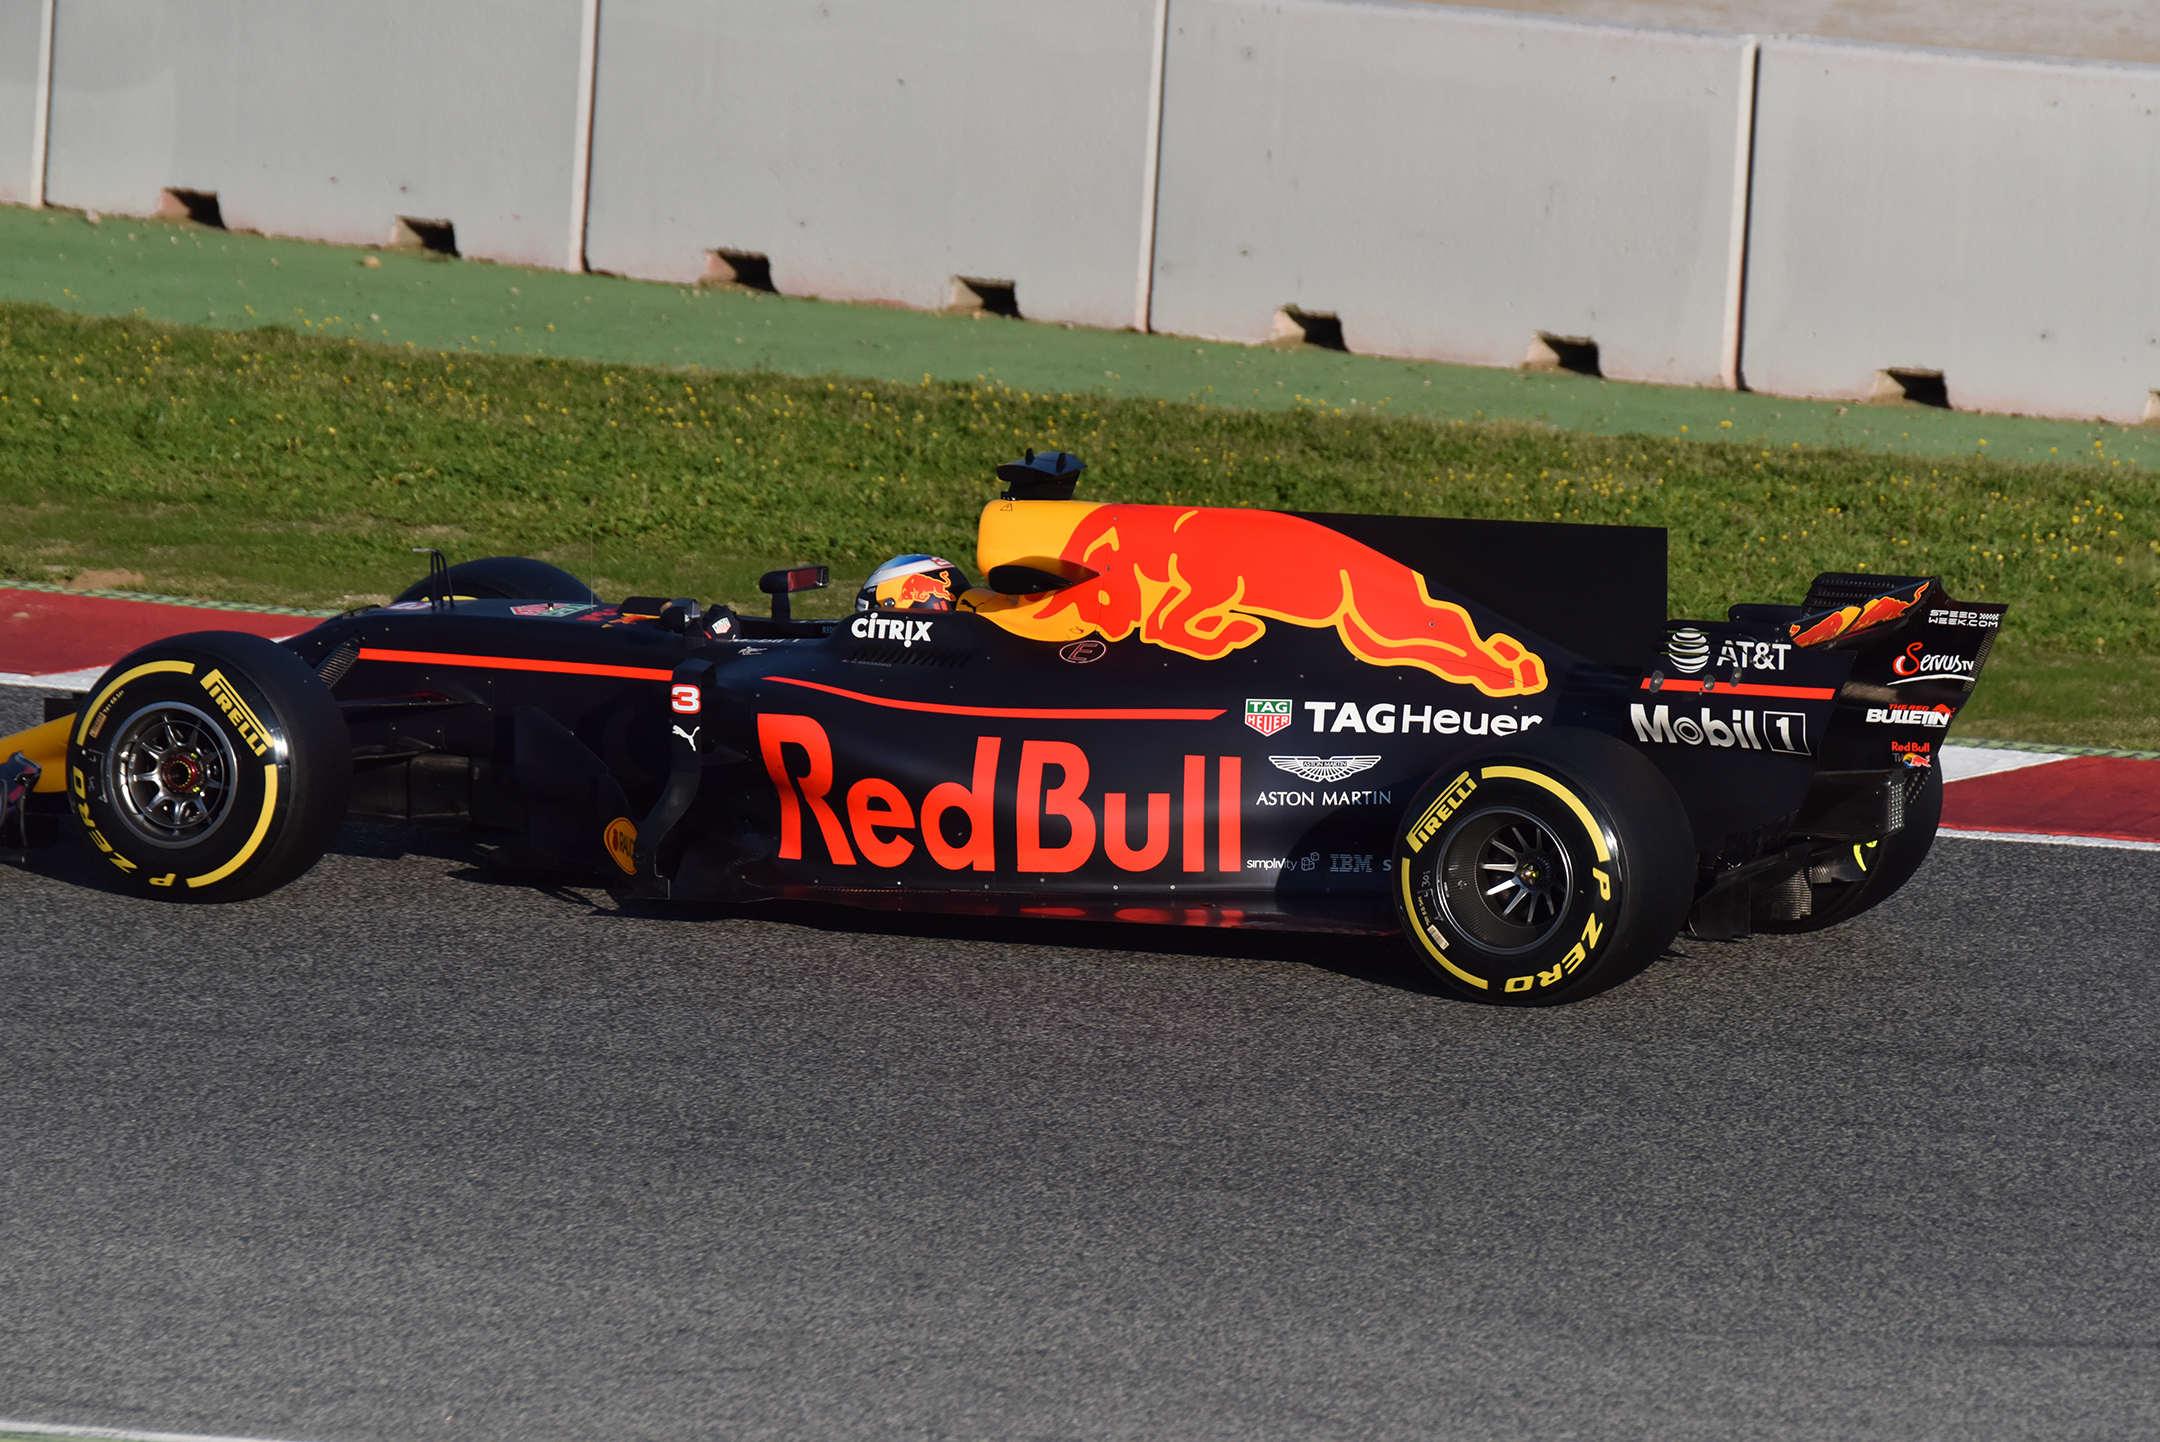 F1 Testday track BCN-CAT - side-face - 2017 - Red Bull Racing RB13 - photo by Jacques Denis - Team DESIGNMOTEUR